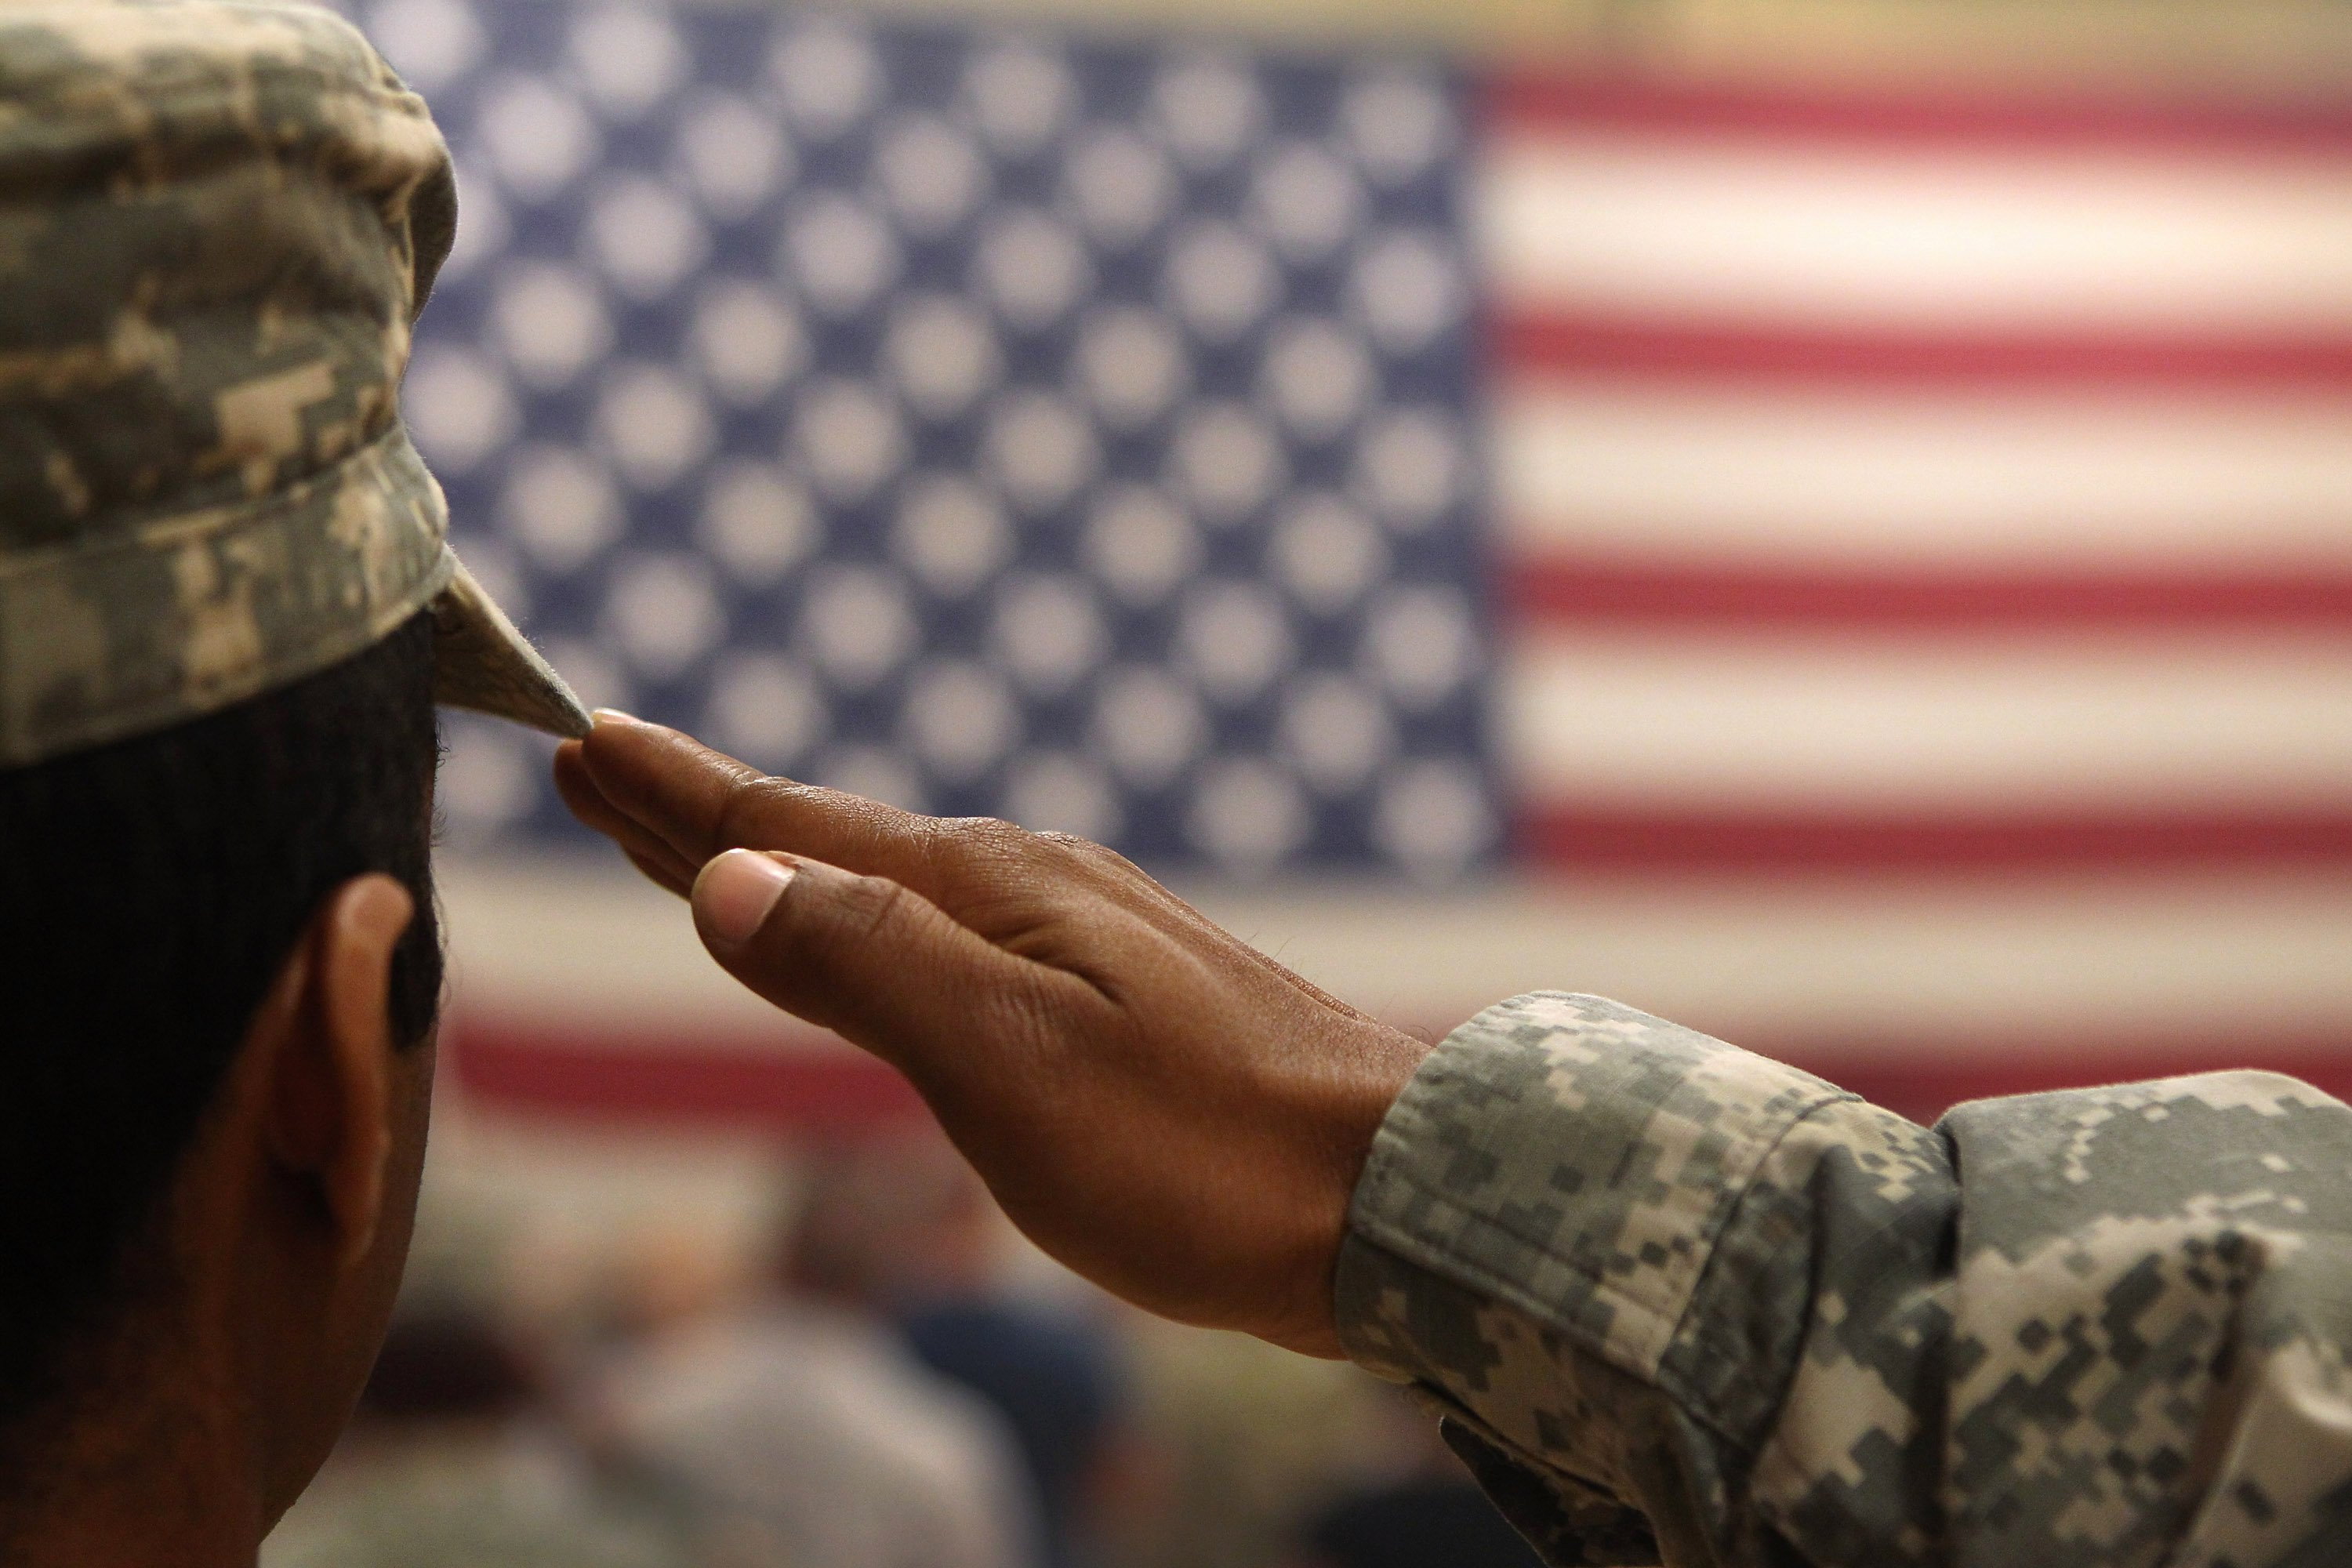 A soldier salutes the flag during a welcome home ceremony. | Photo: Getty Images